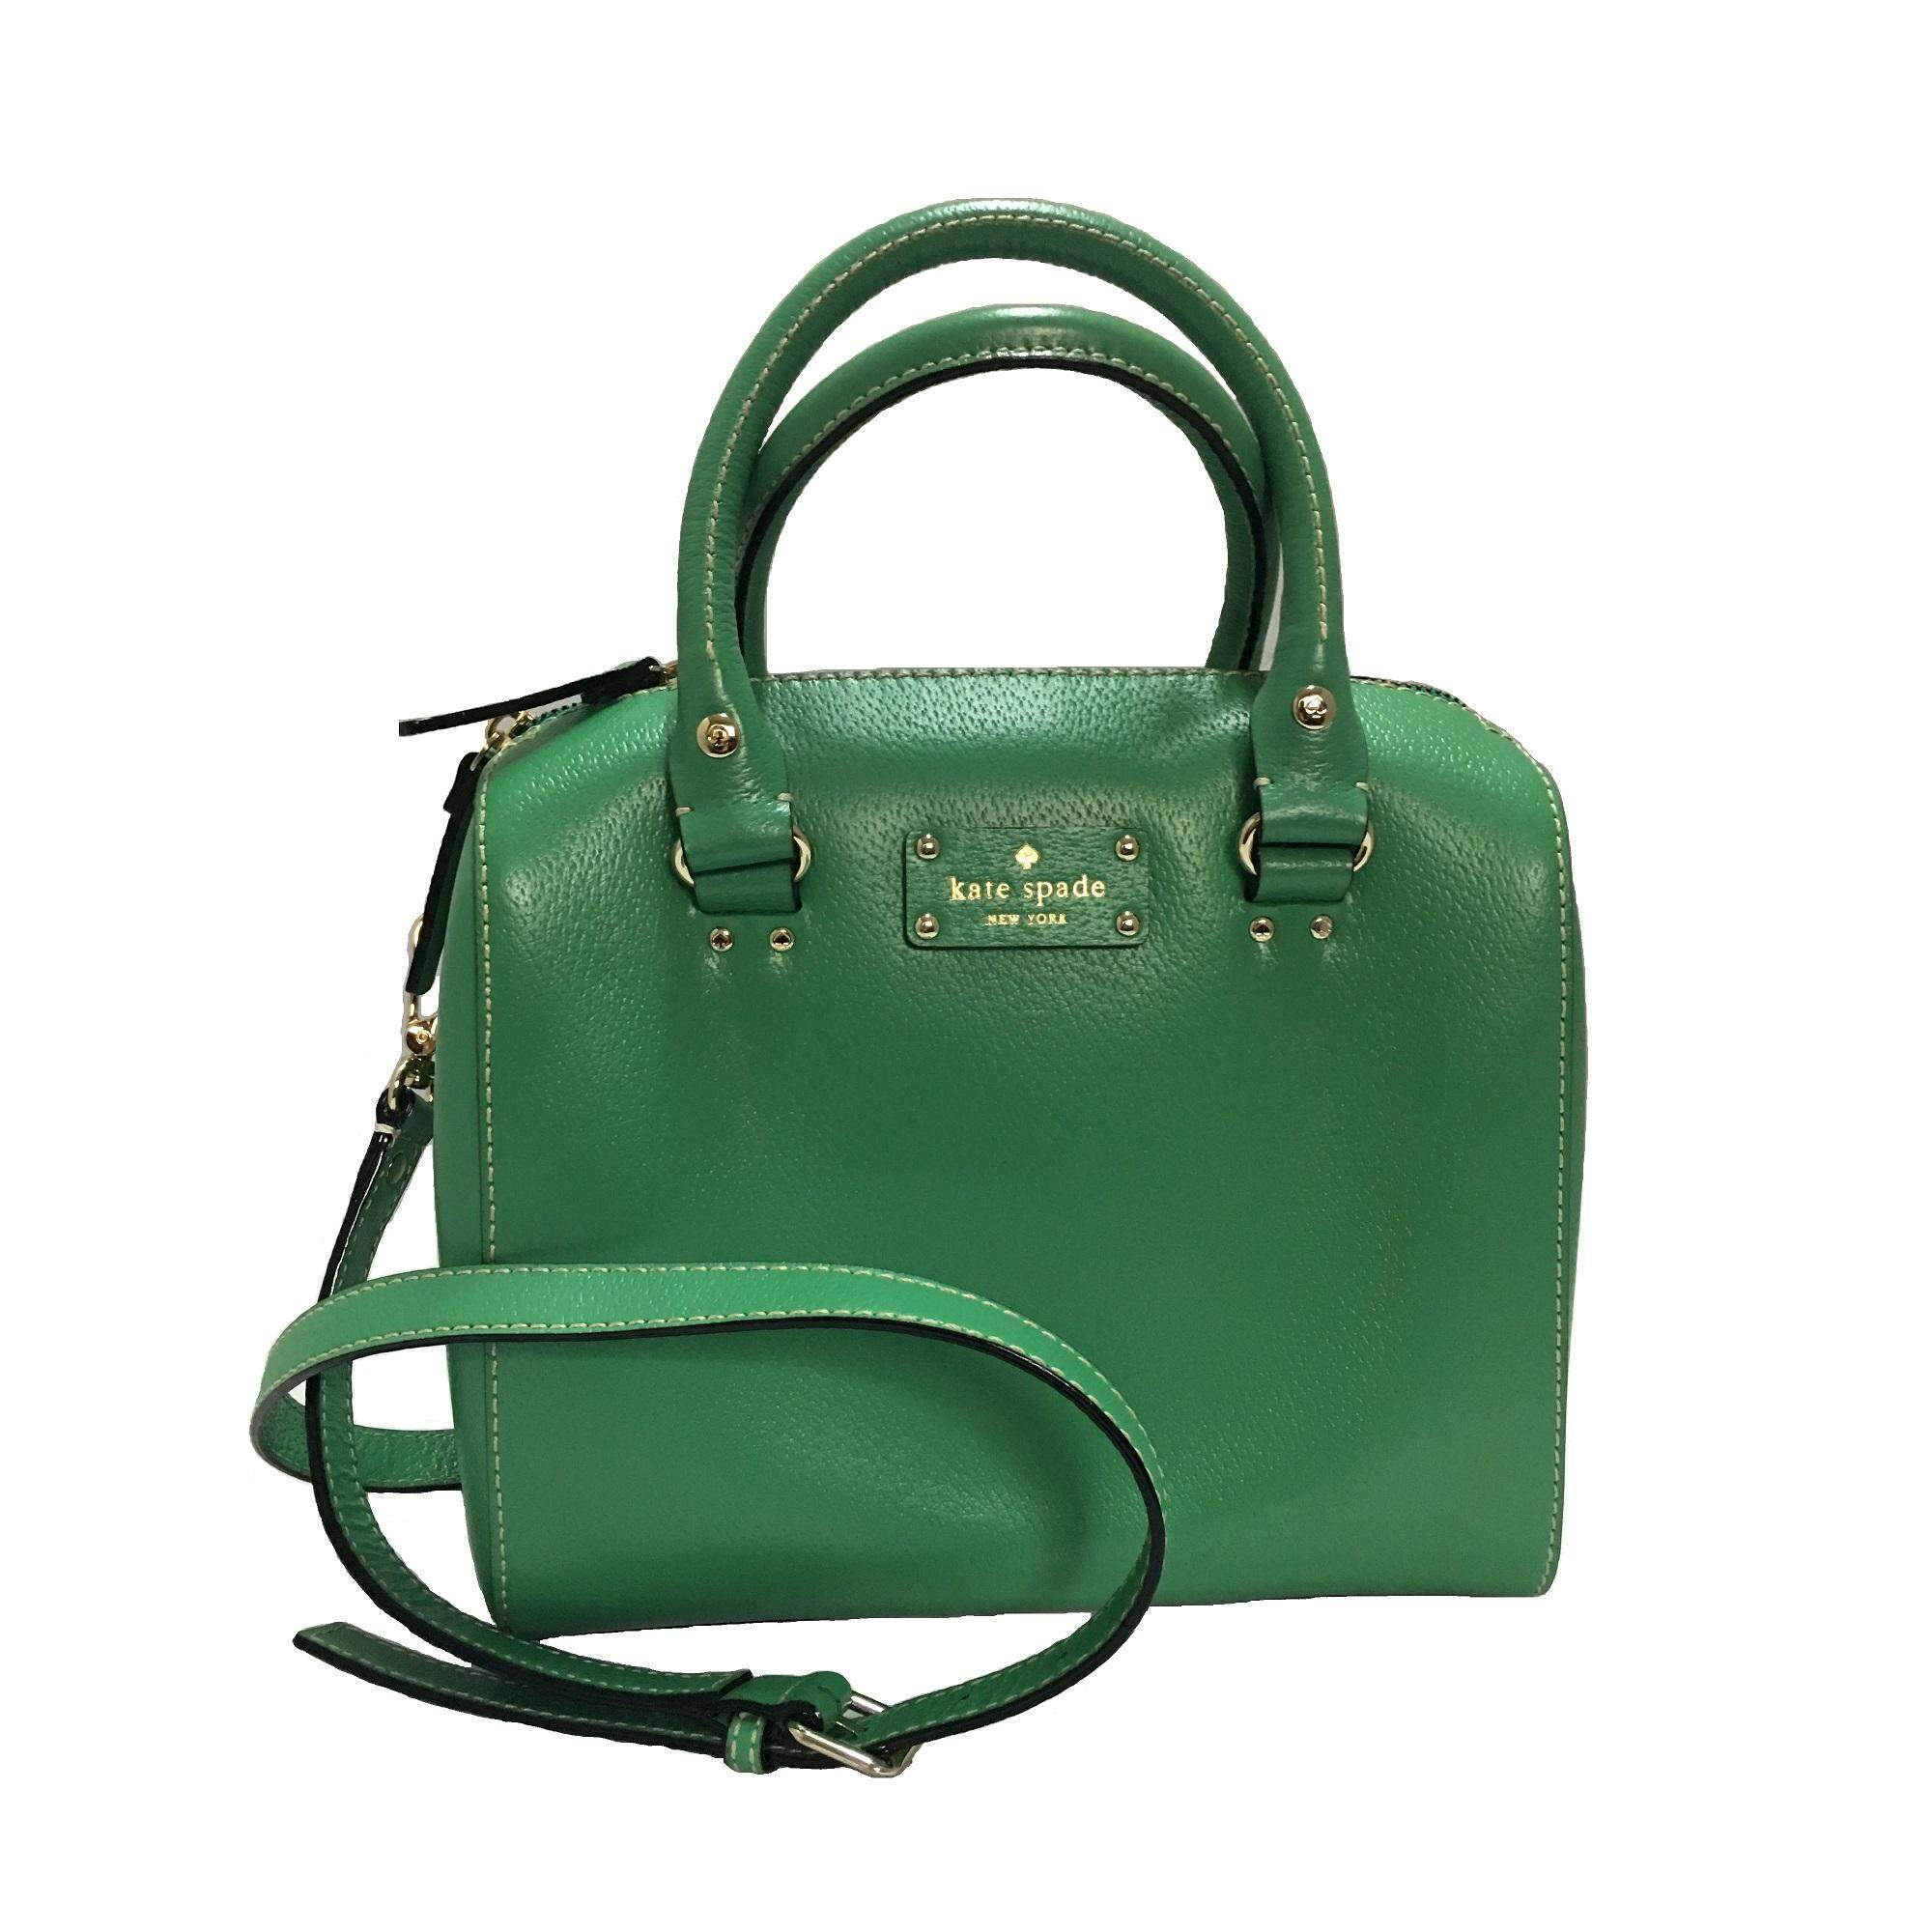 Kate Spade Women Bags price in Malaysia - Best Kate Spade Women Bags ... b1bbac55a80f4